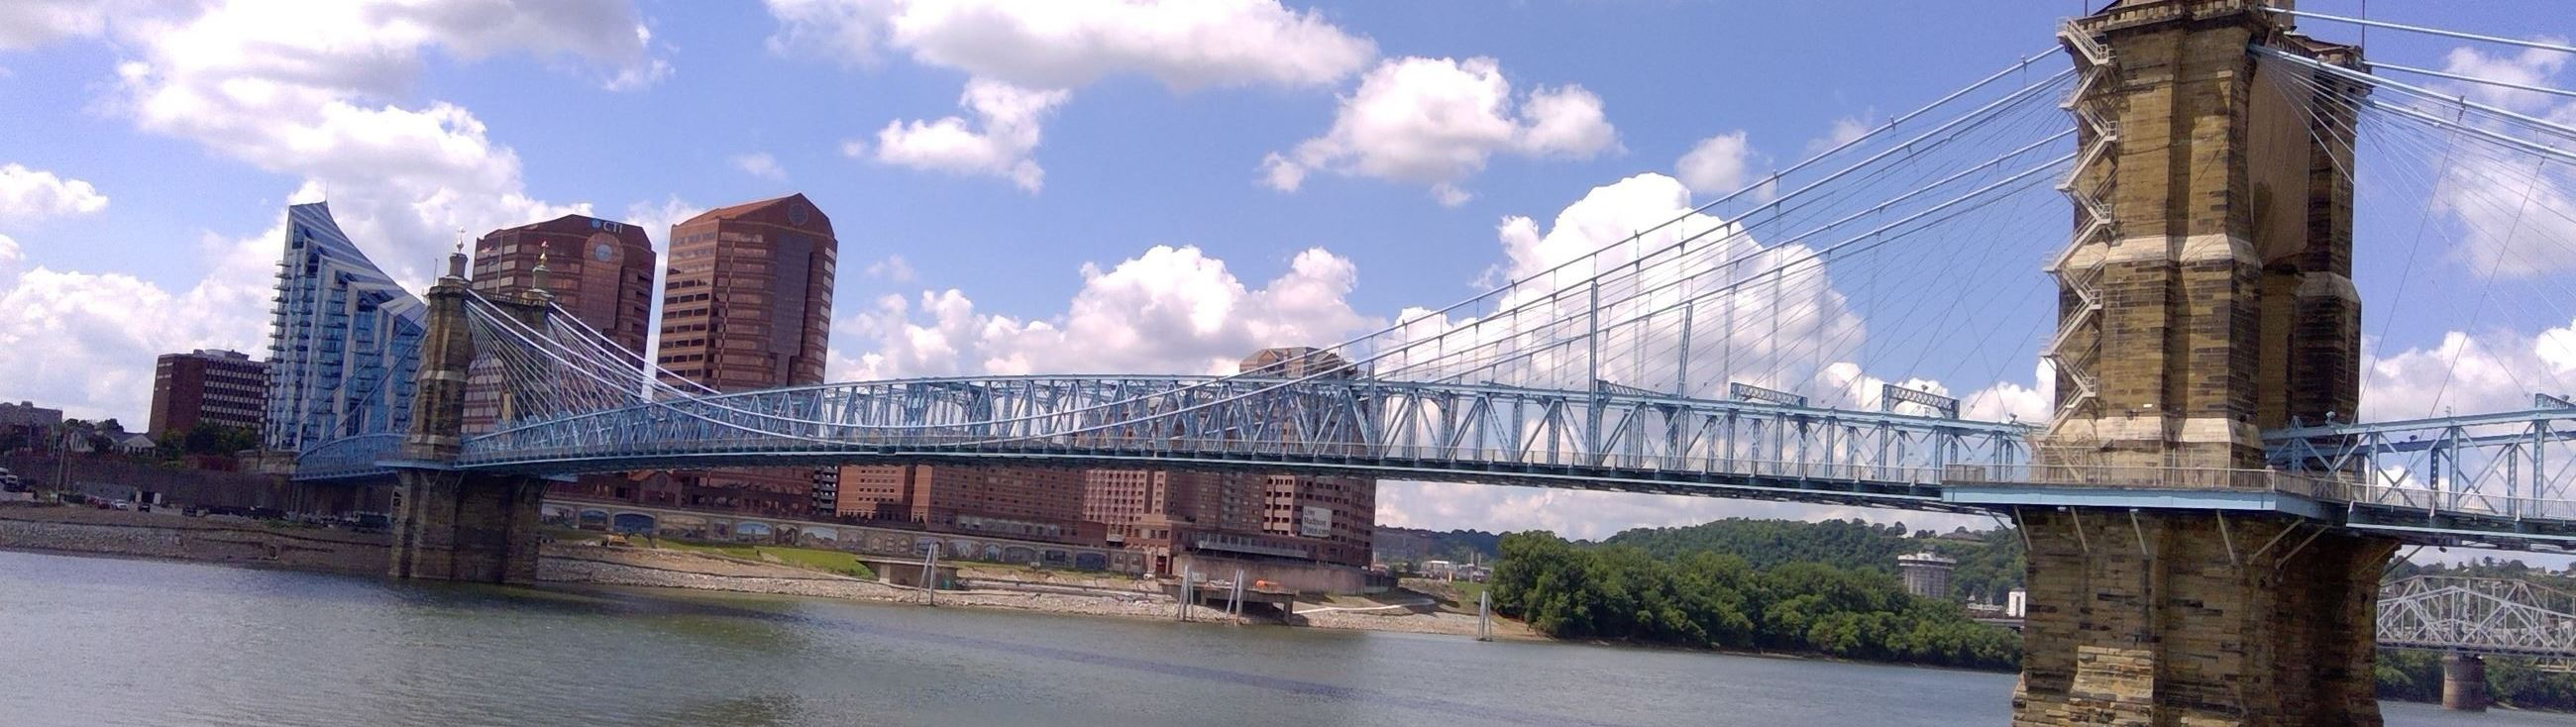 Roebling bridge and City of Covington